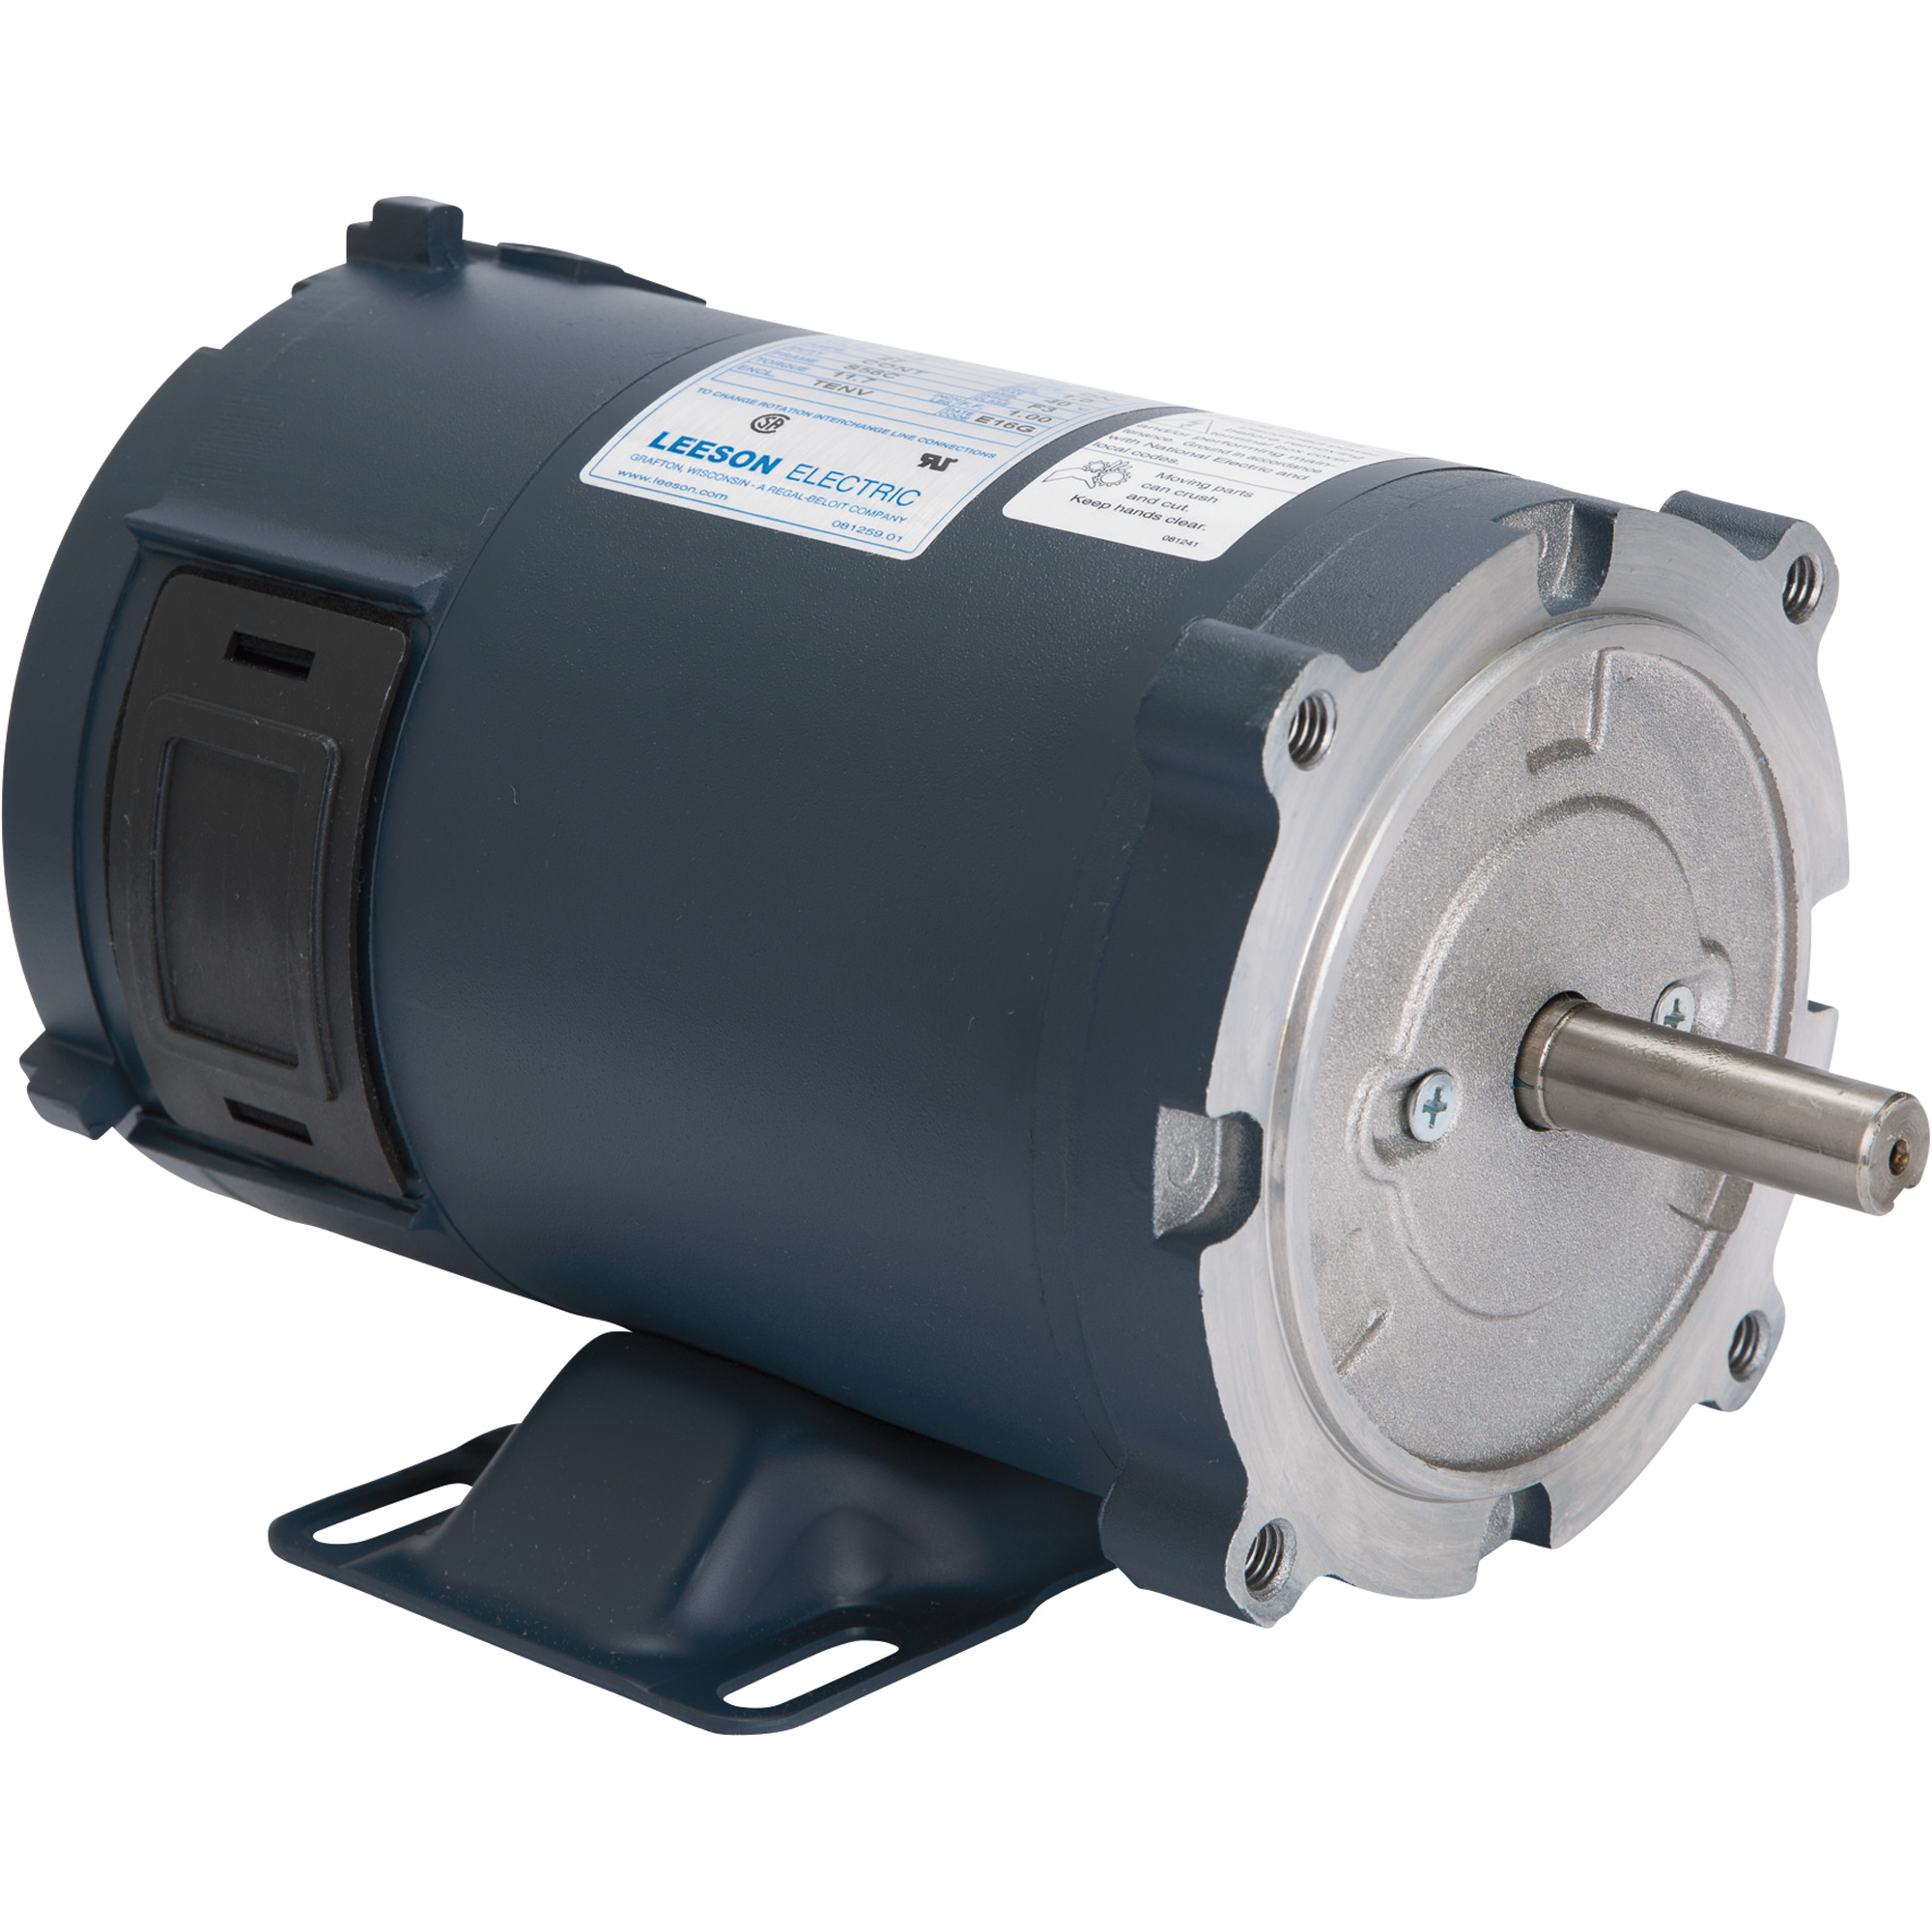 leeson 12 volt dc motor 1 2 hp 1750 rpm 39 amps model